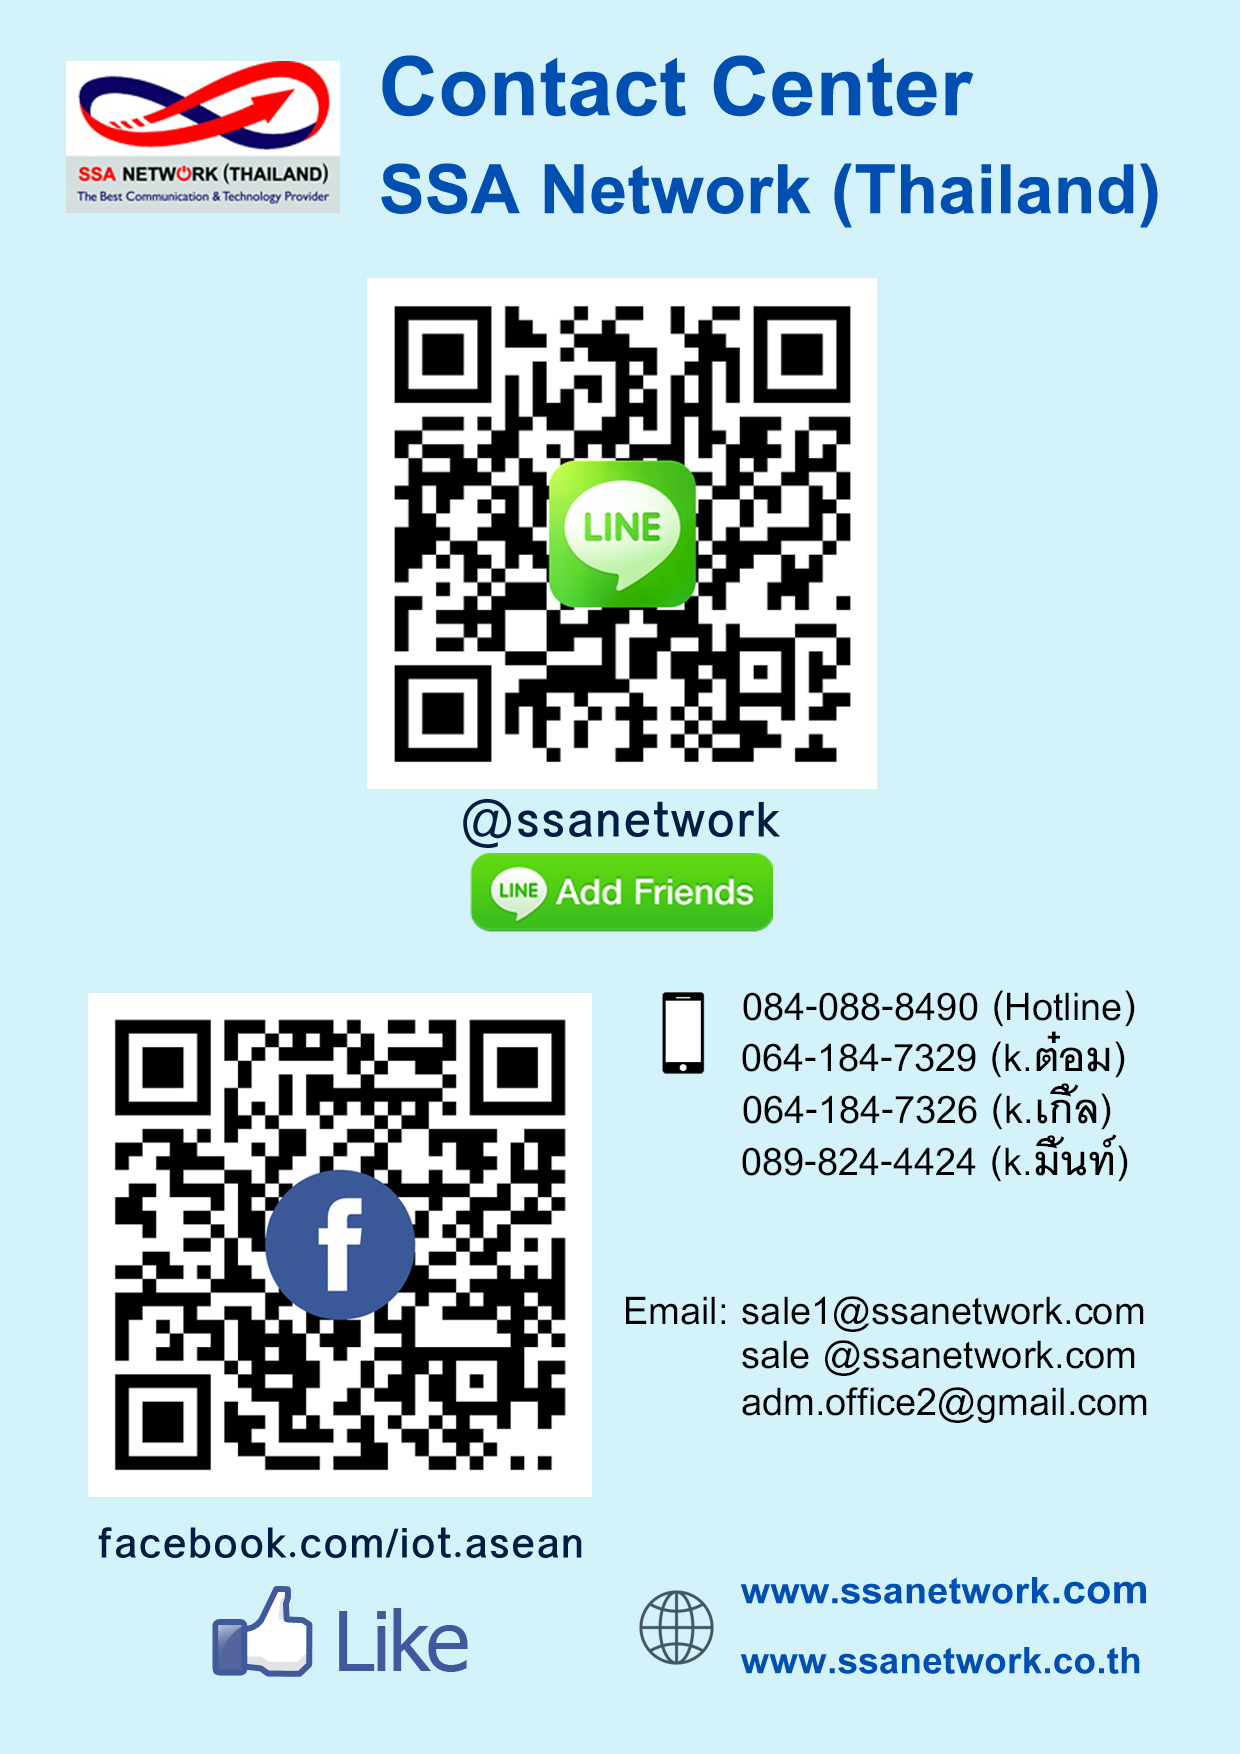 ssanetwork-contact-center